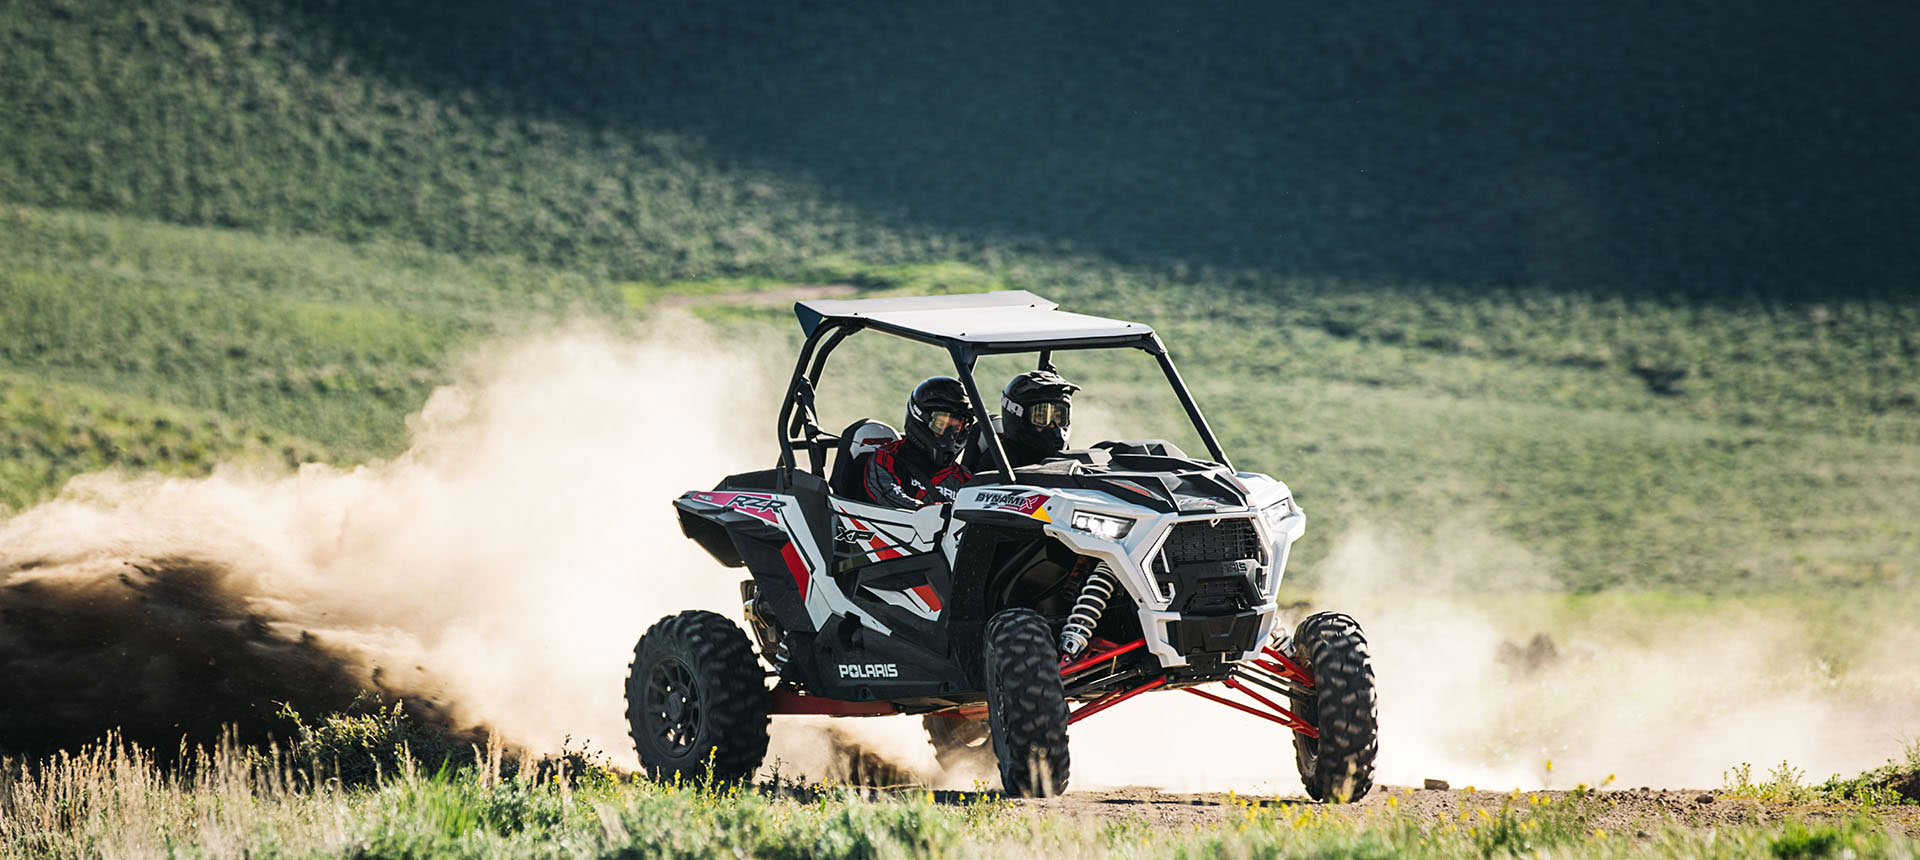 2019 Polaris RZR XP 1000 in Rapid City, South Dakota - Photo 3